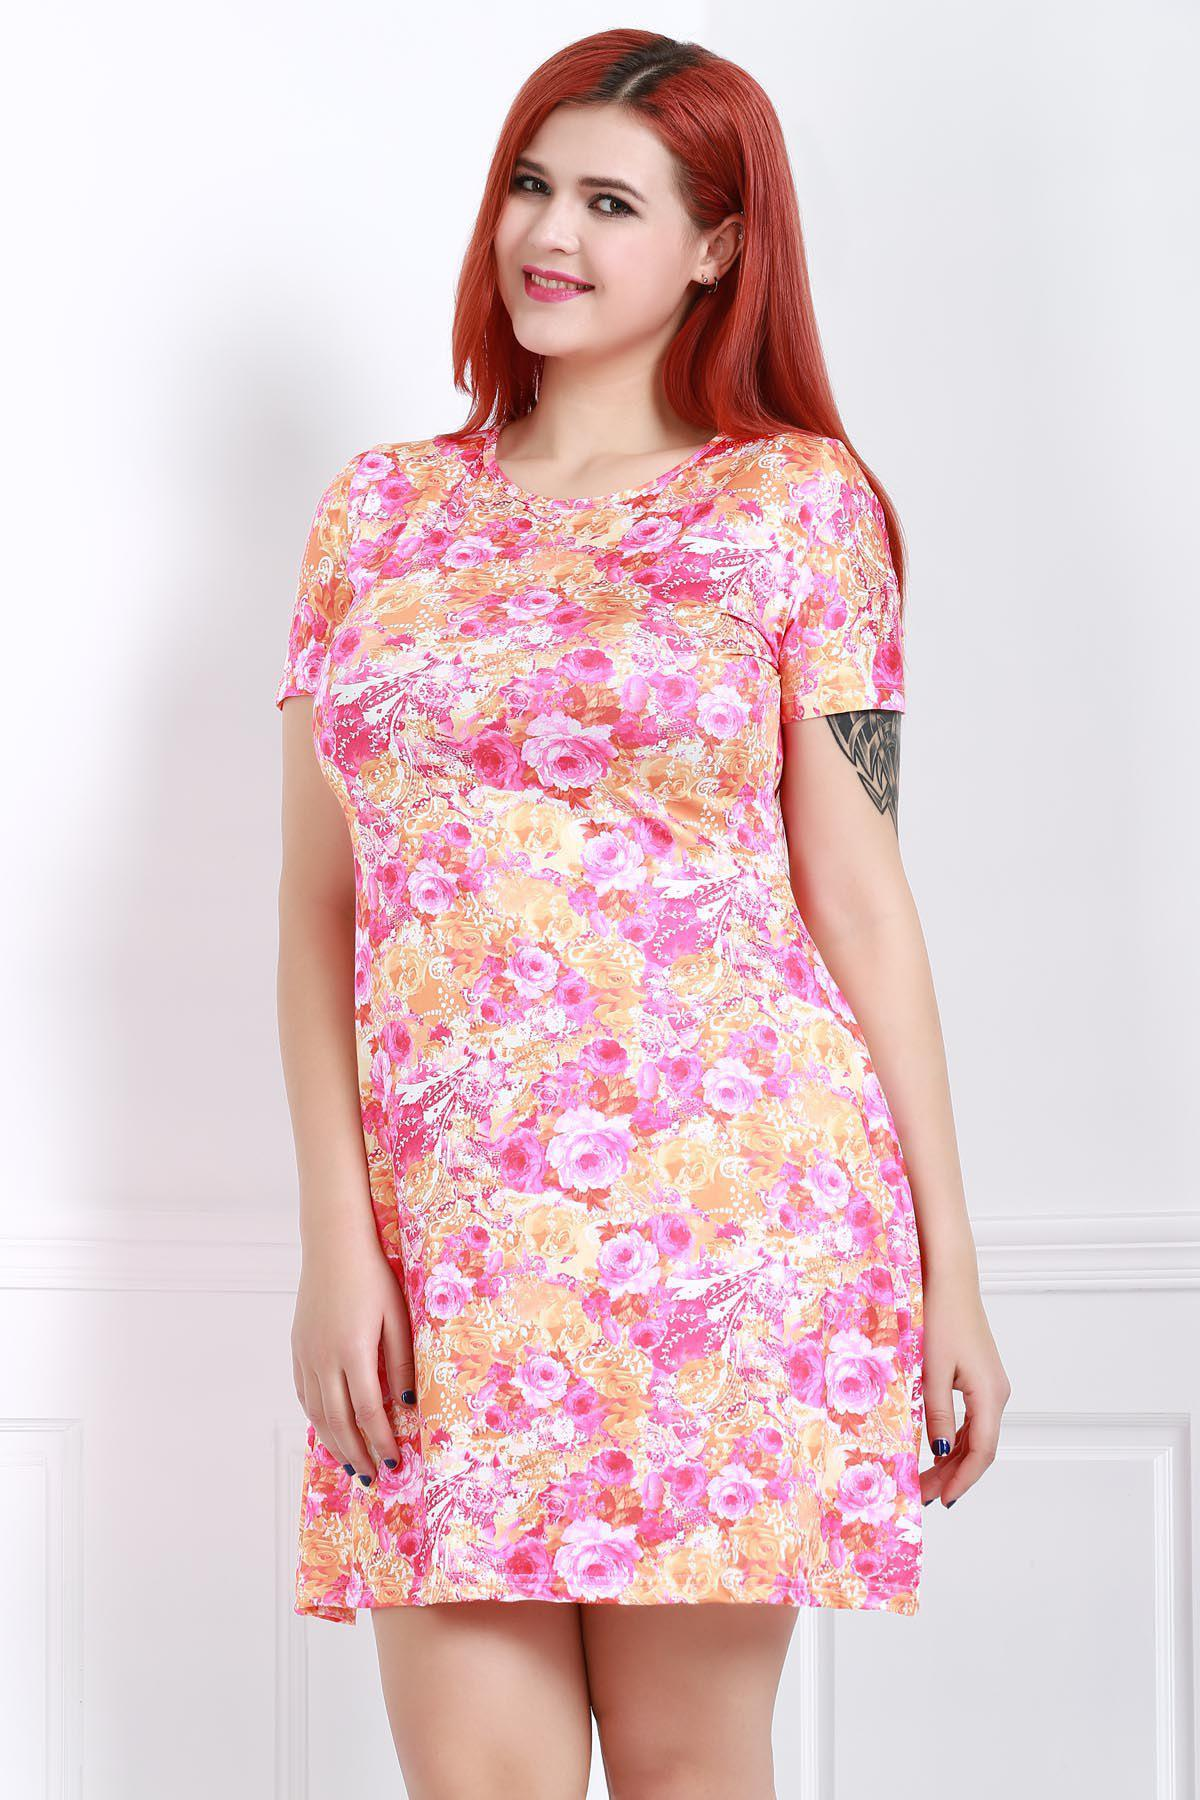 Stylish Scoop Collar Short Sleeve Plus Size Floral Print Women's Dress - ROSE 2XL